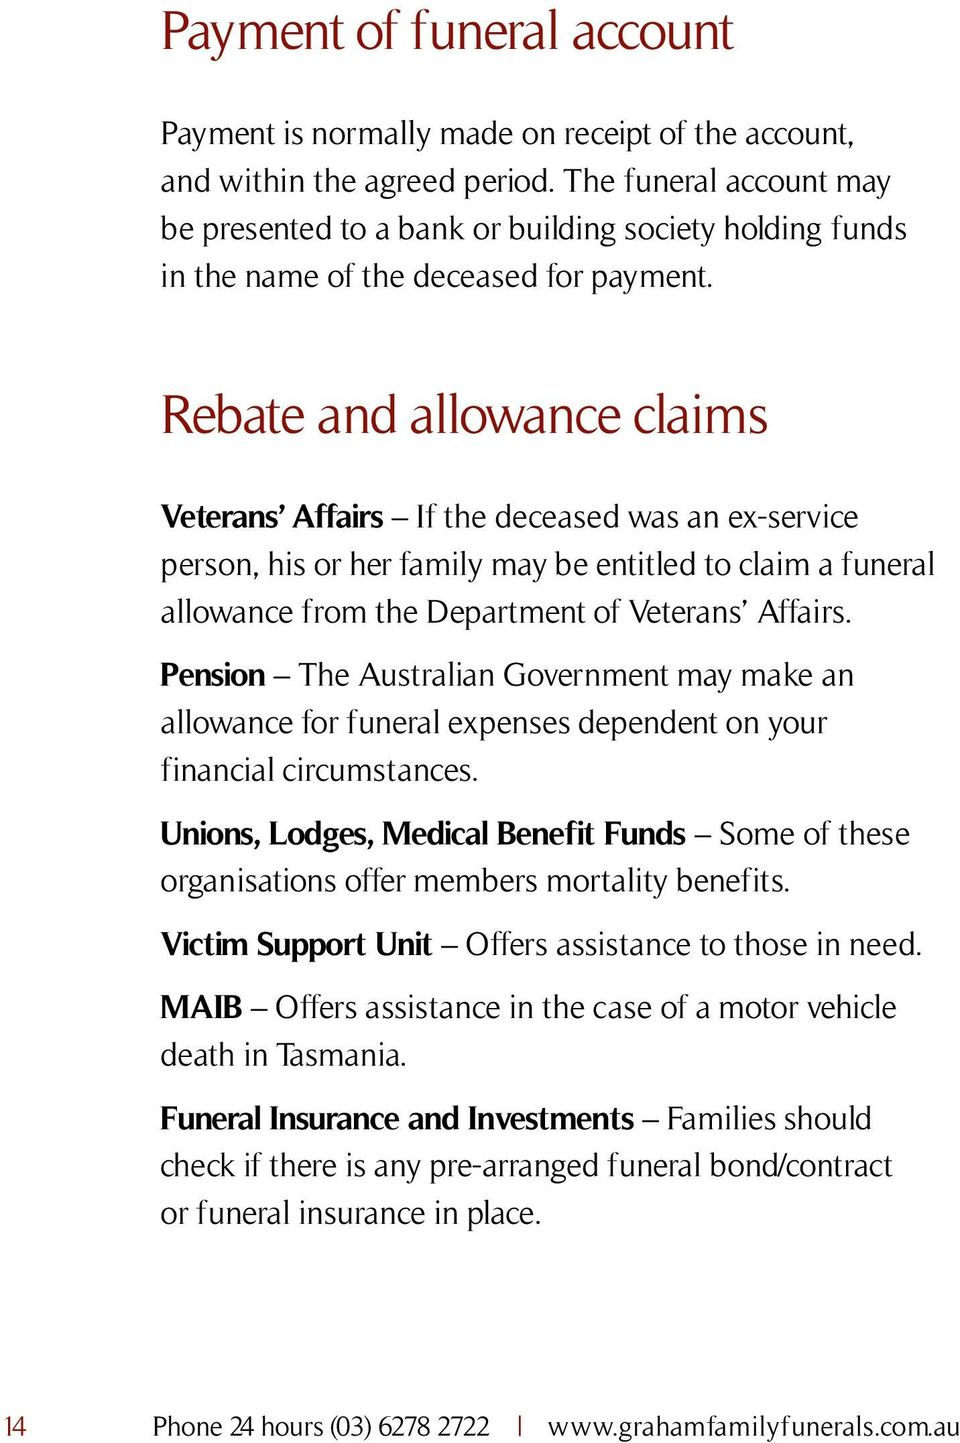 Rebate and allowance claims Veterans Affairs If the deceased was an ex-service person, his or her family may be entitled to claim a funeral allowance from the Department of Veterans Affairs.